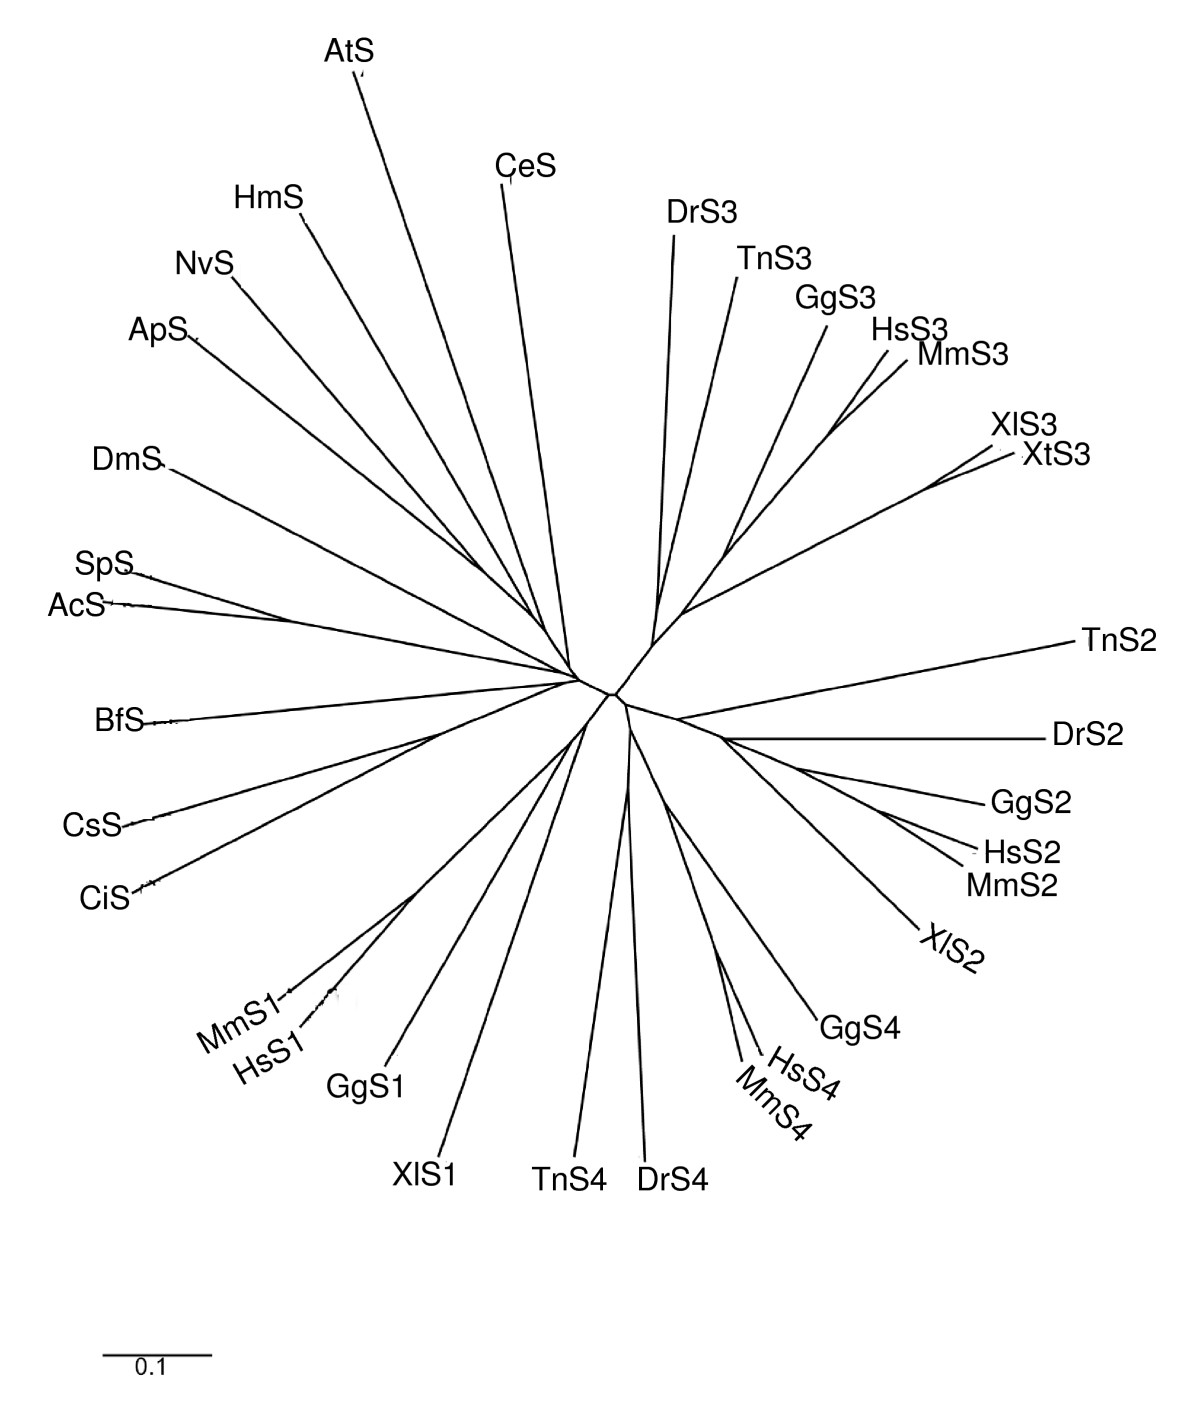 https://static-content.springer.com/image/art%3A10.1186%2F1471-2164-7-83/MediaObjects/12864_2006_Article_466_Fig2_HTML.jpg